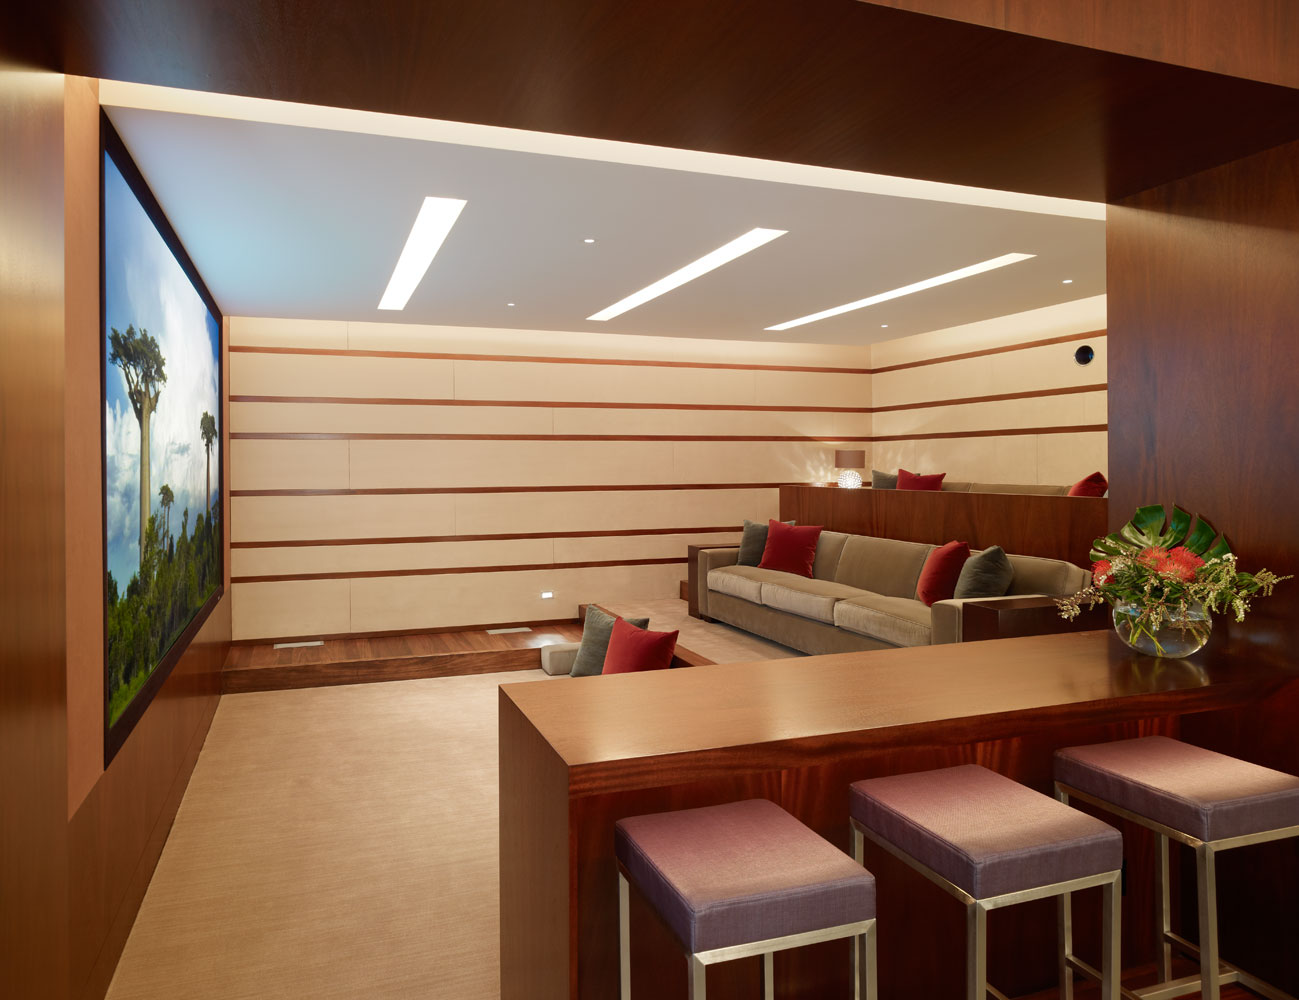 Small Home Theater Design: Irregularly Shaped House With A Small Grove Of Eucalyptus